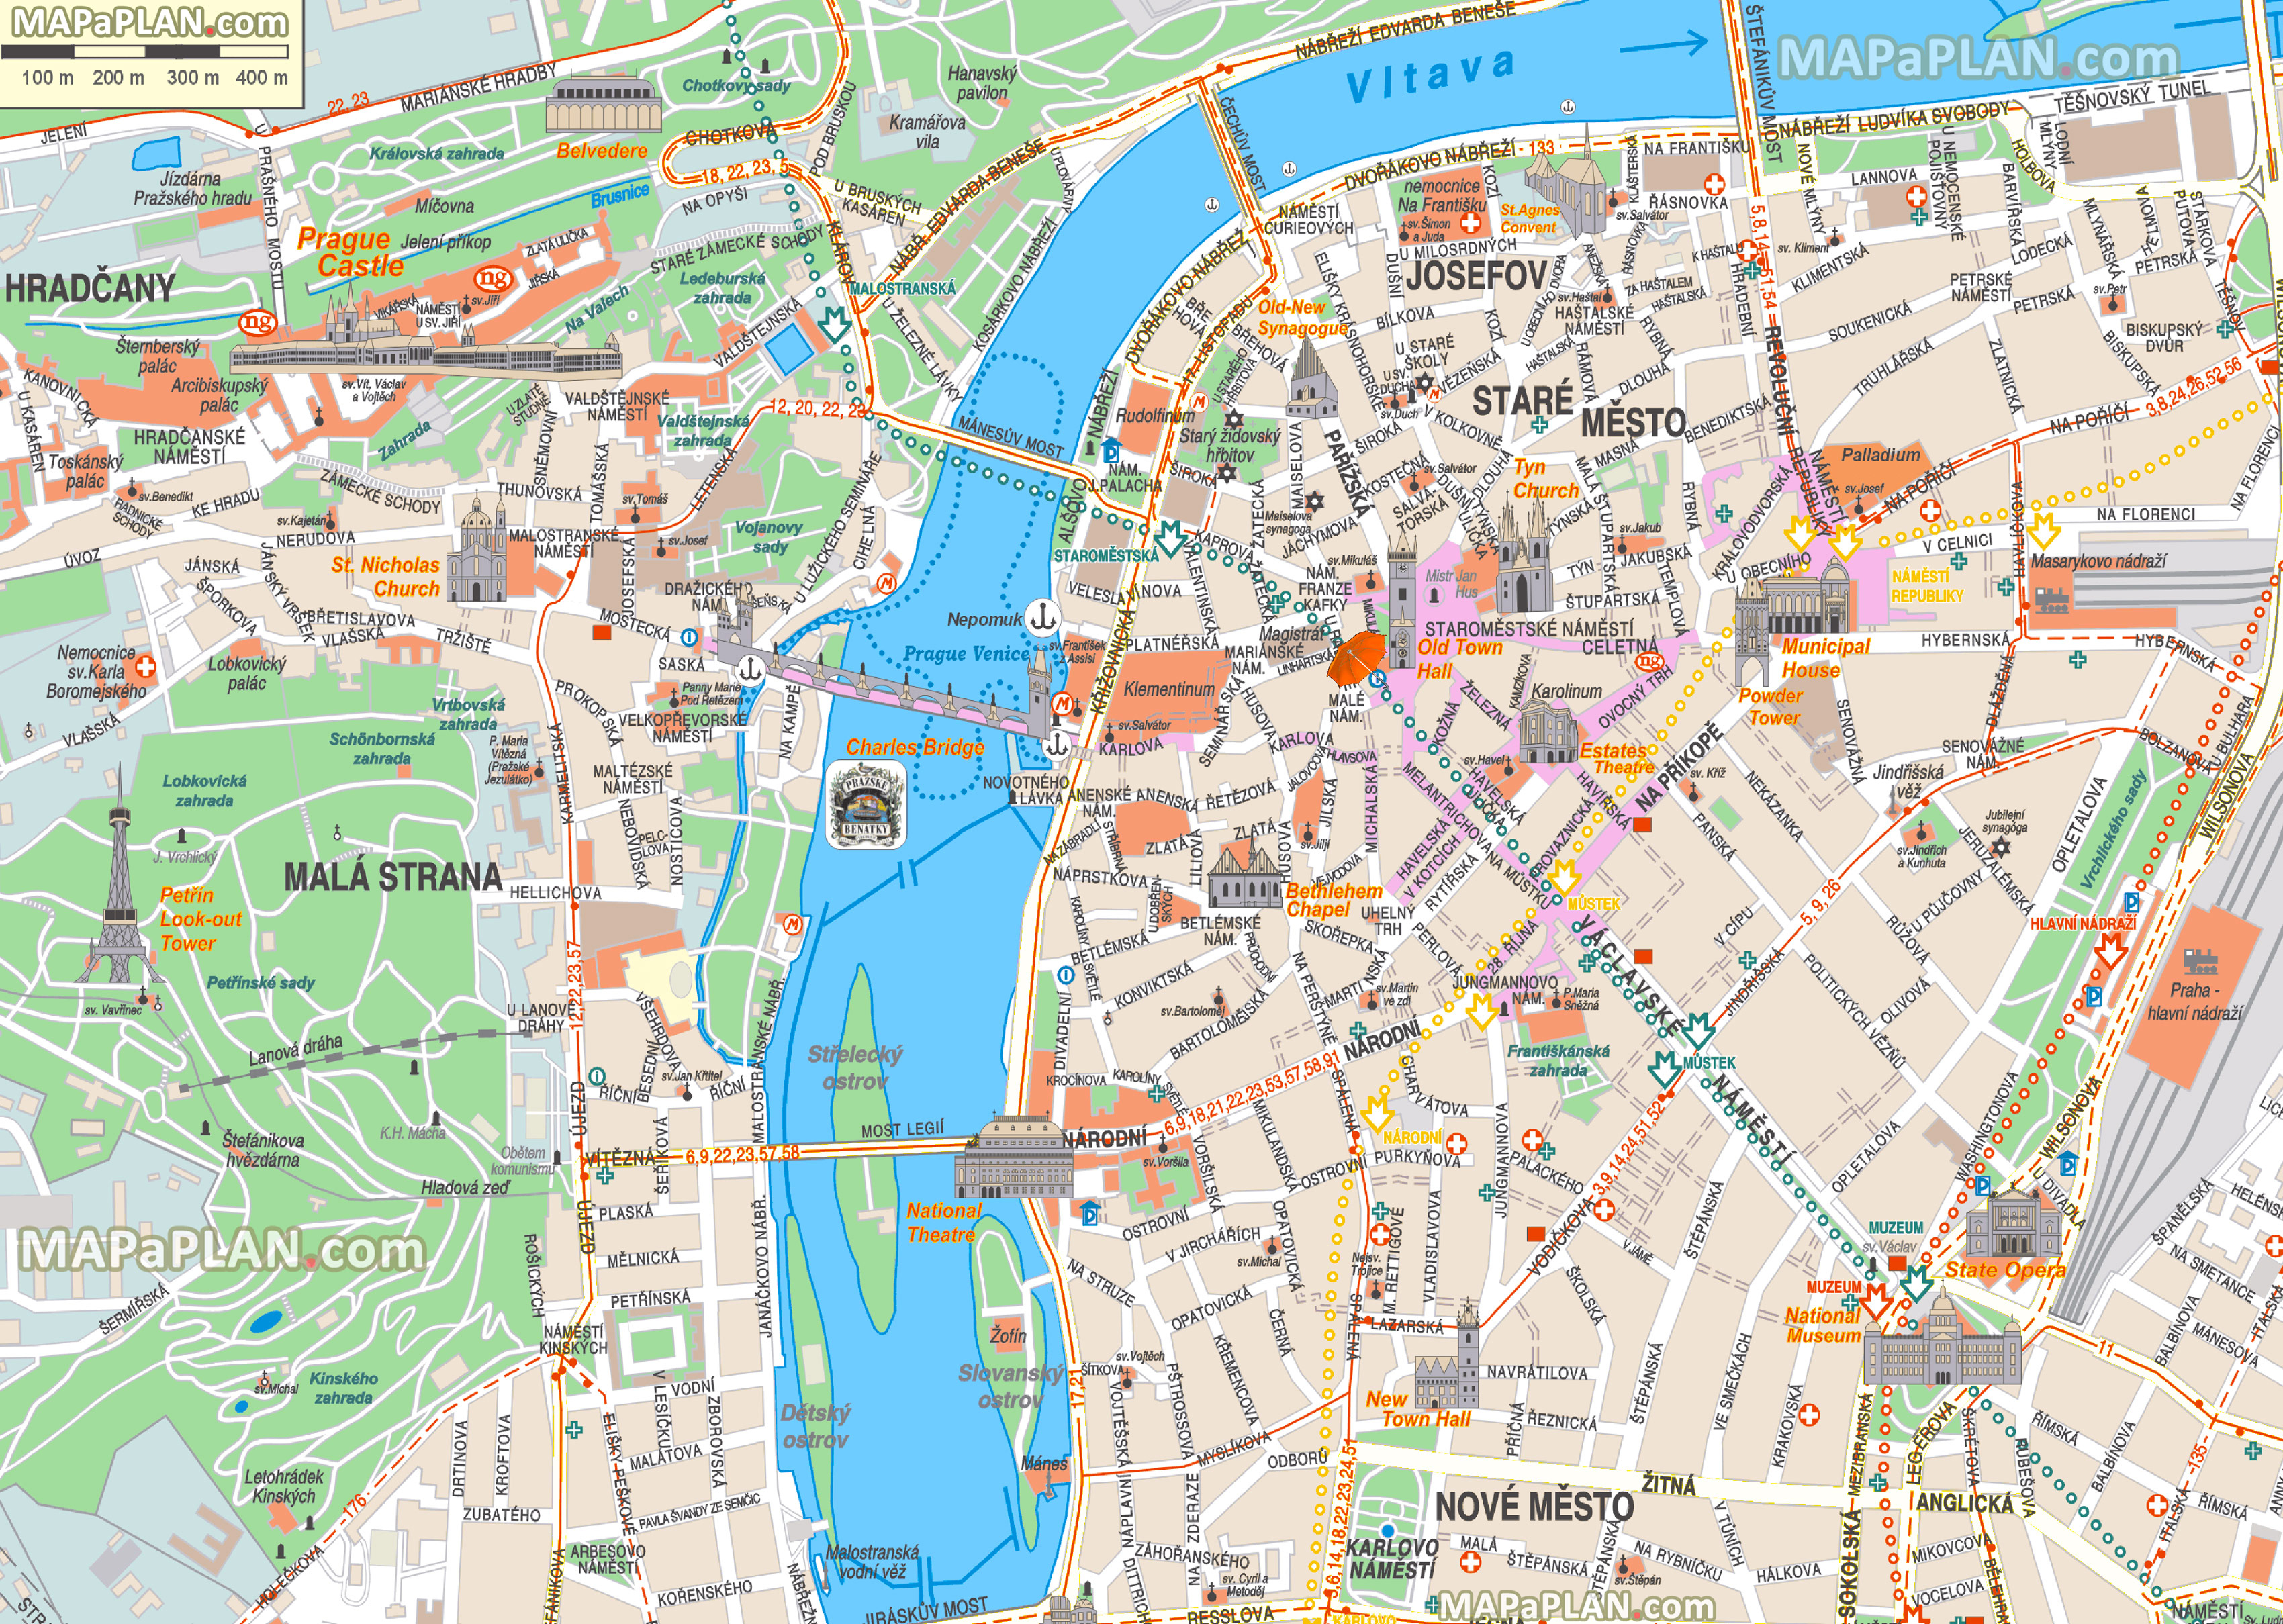 Prague Maps - Top Tourist Attractions - Free, Printable City Street Map - Printable Street Maps